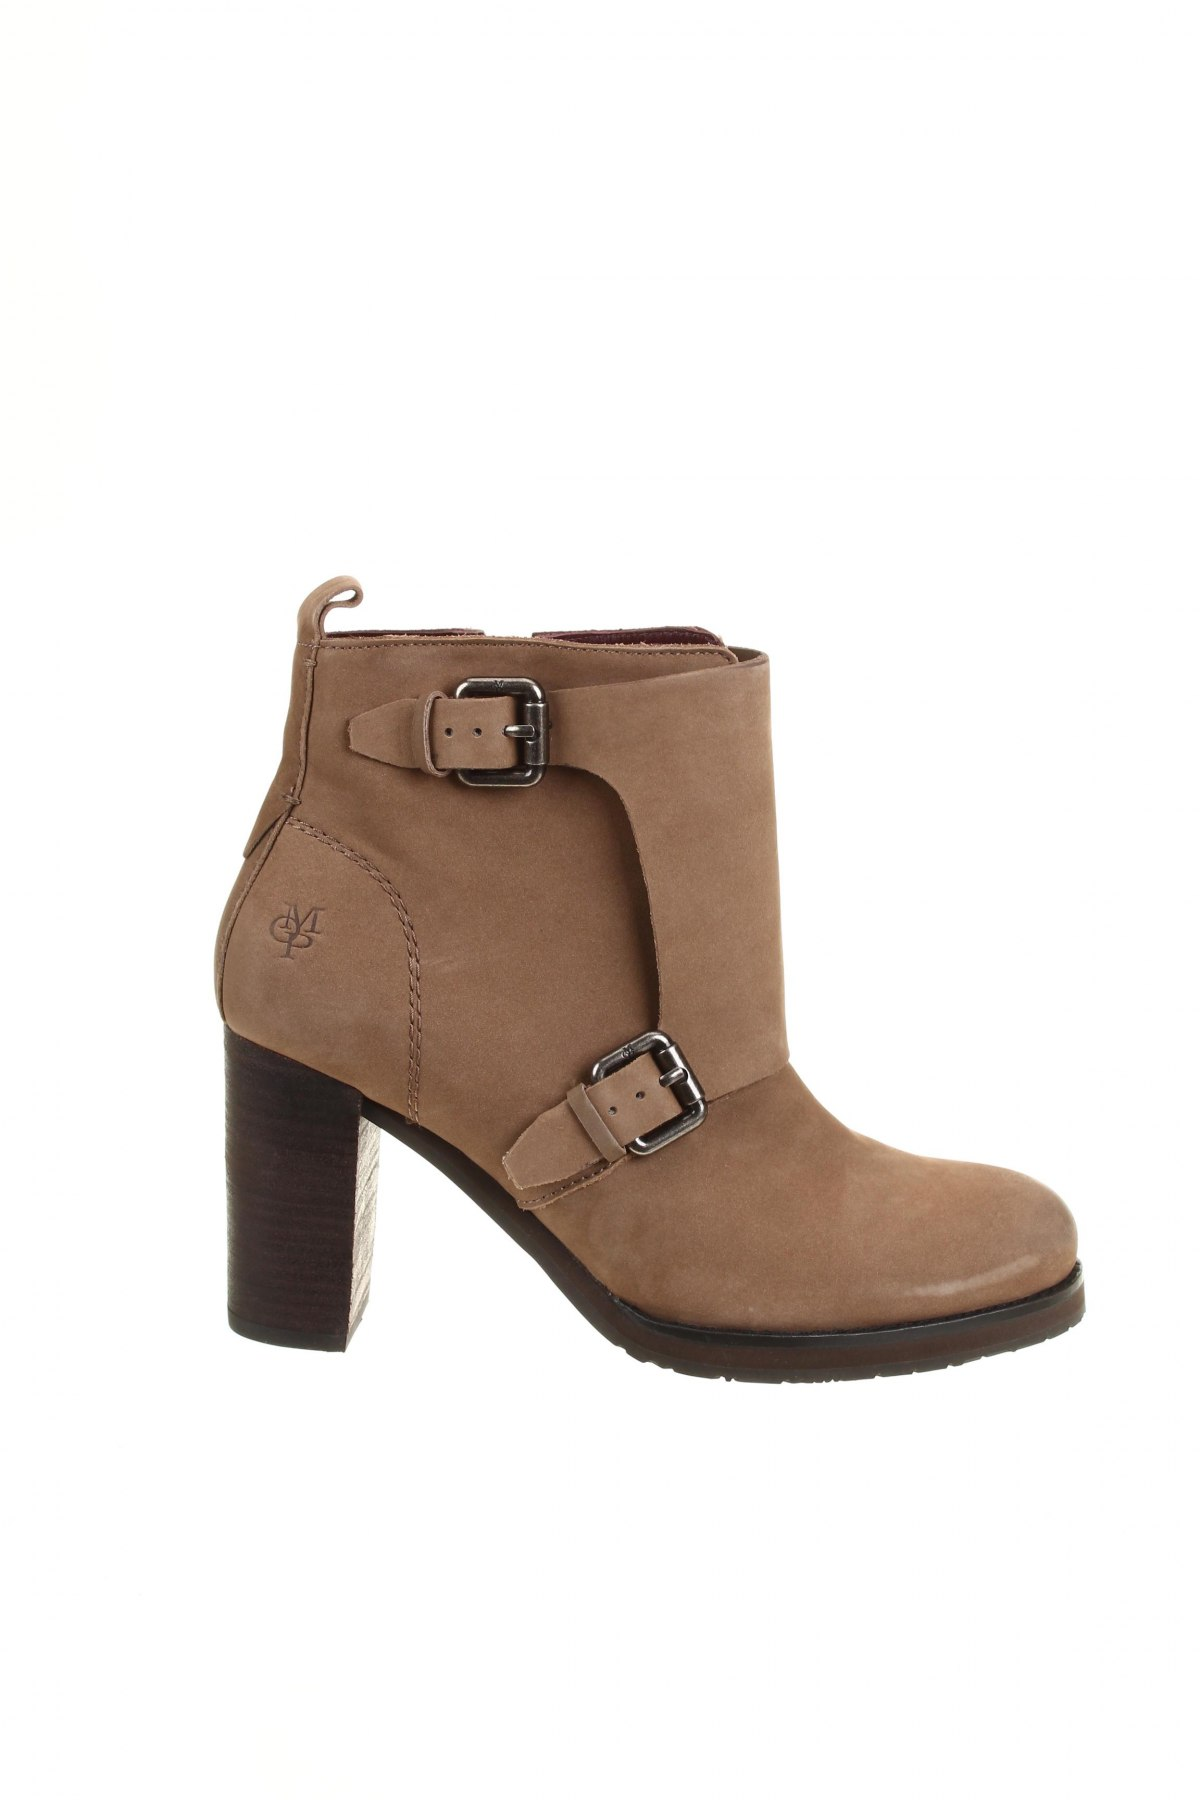 reputable site 73de6 86952 Damen Stiefeletten Marc O'polo